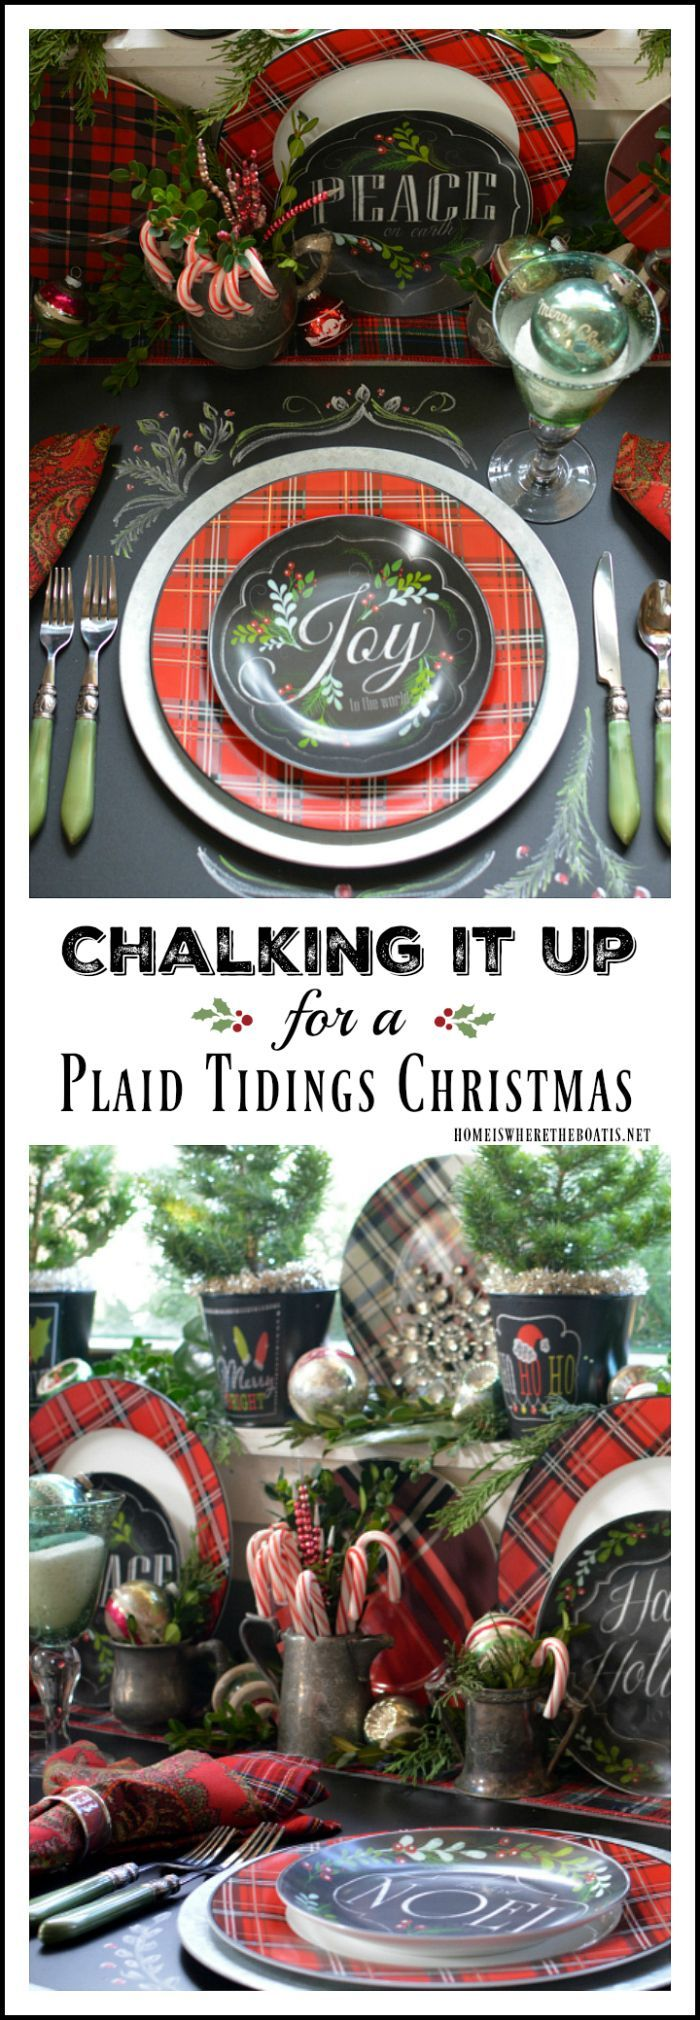 Plaid monograms natural wood ornaments feathers and i couldn t - Plaid Tidings Christmas Table With Fresh Greenery Vintage Ornaments And Chalkboard Runner Homeiswheretheboatis